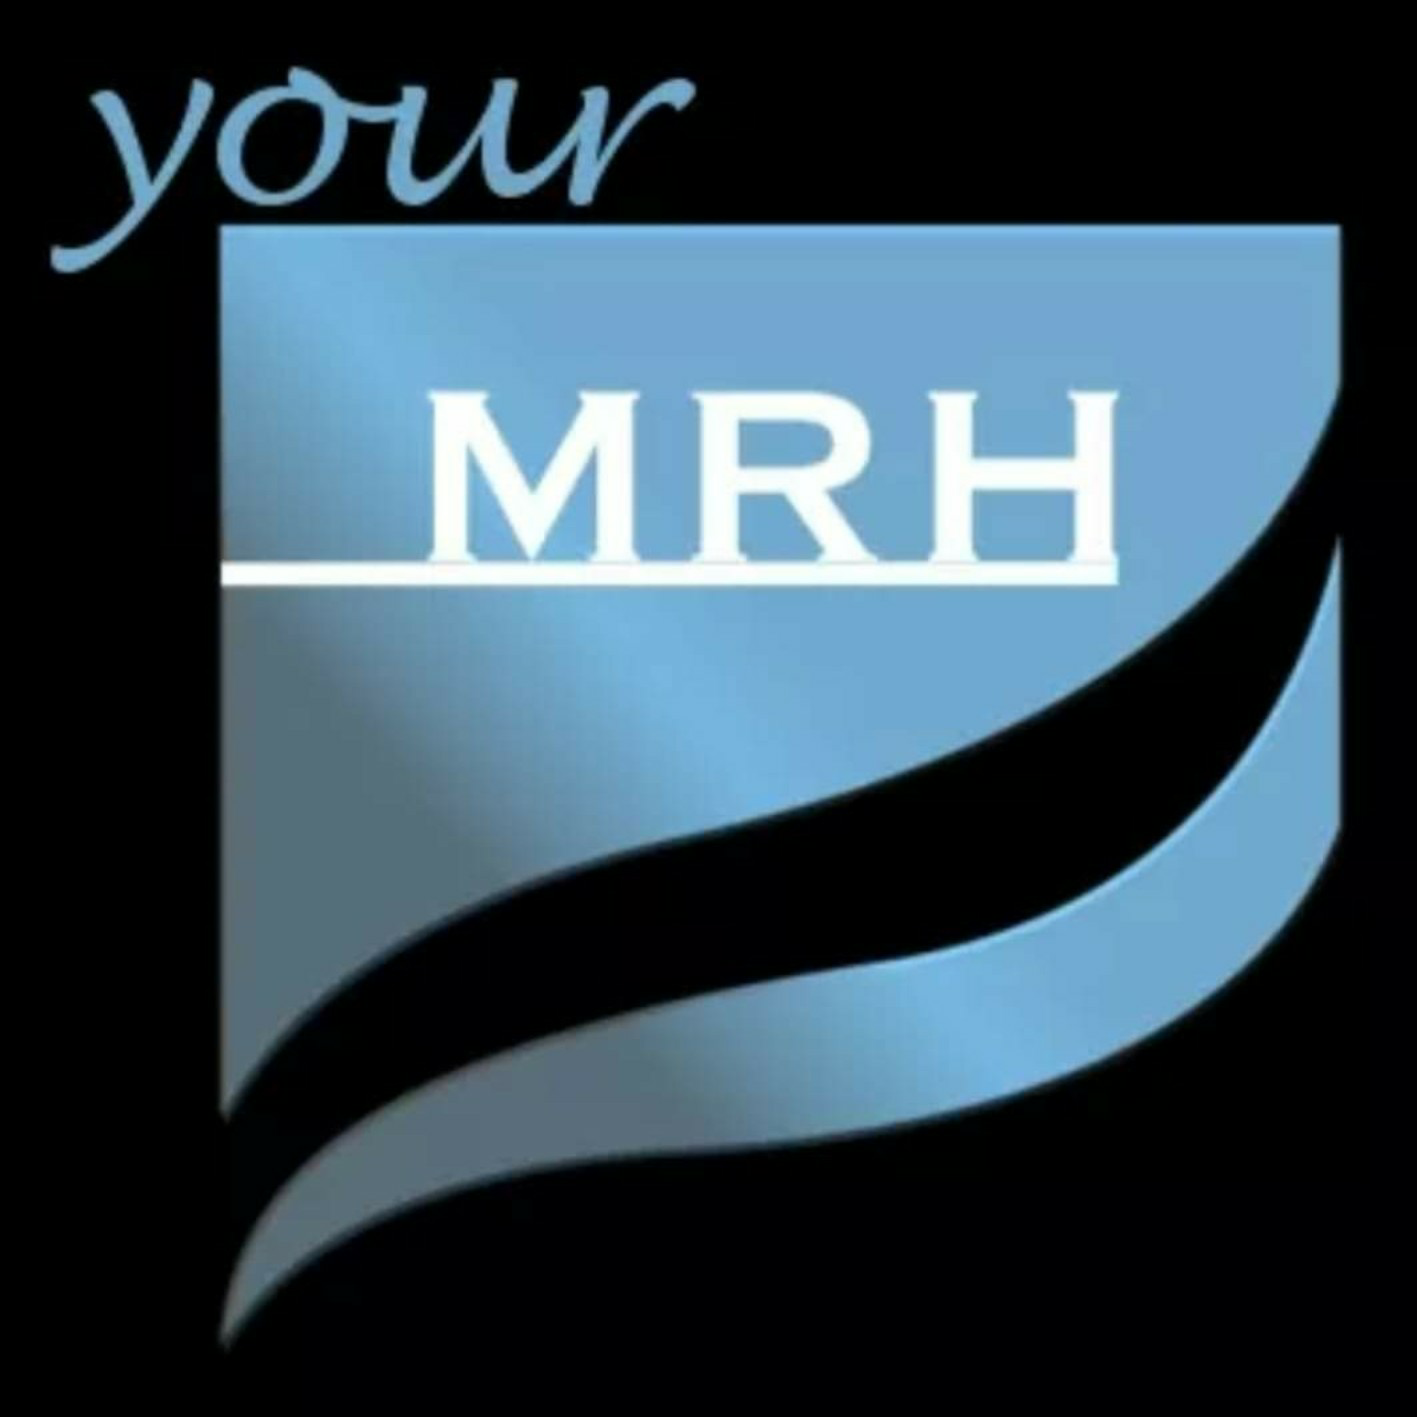 YourMRH Development Ltd